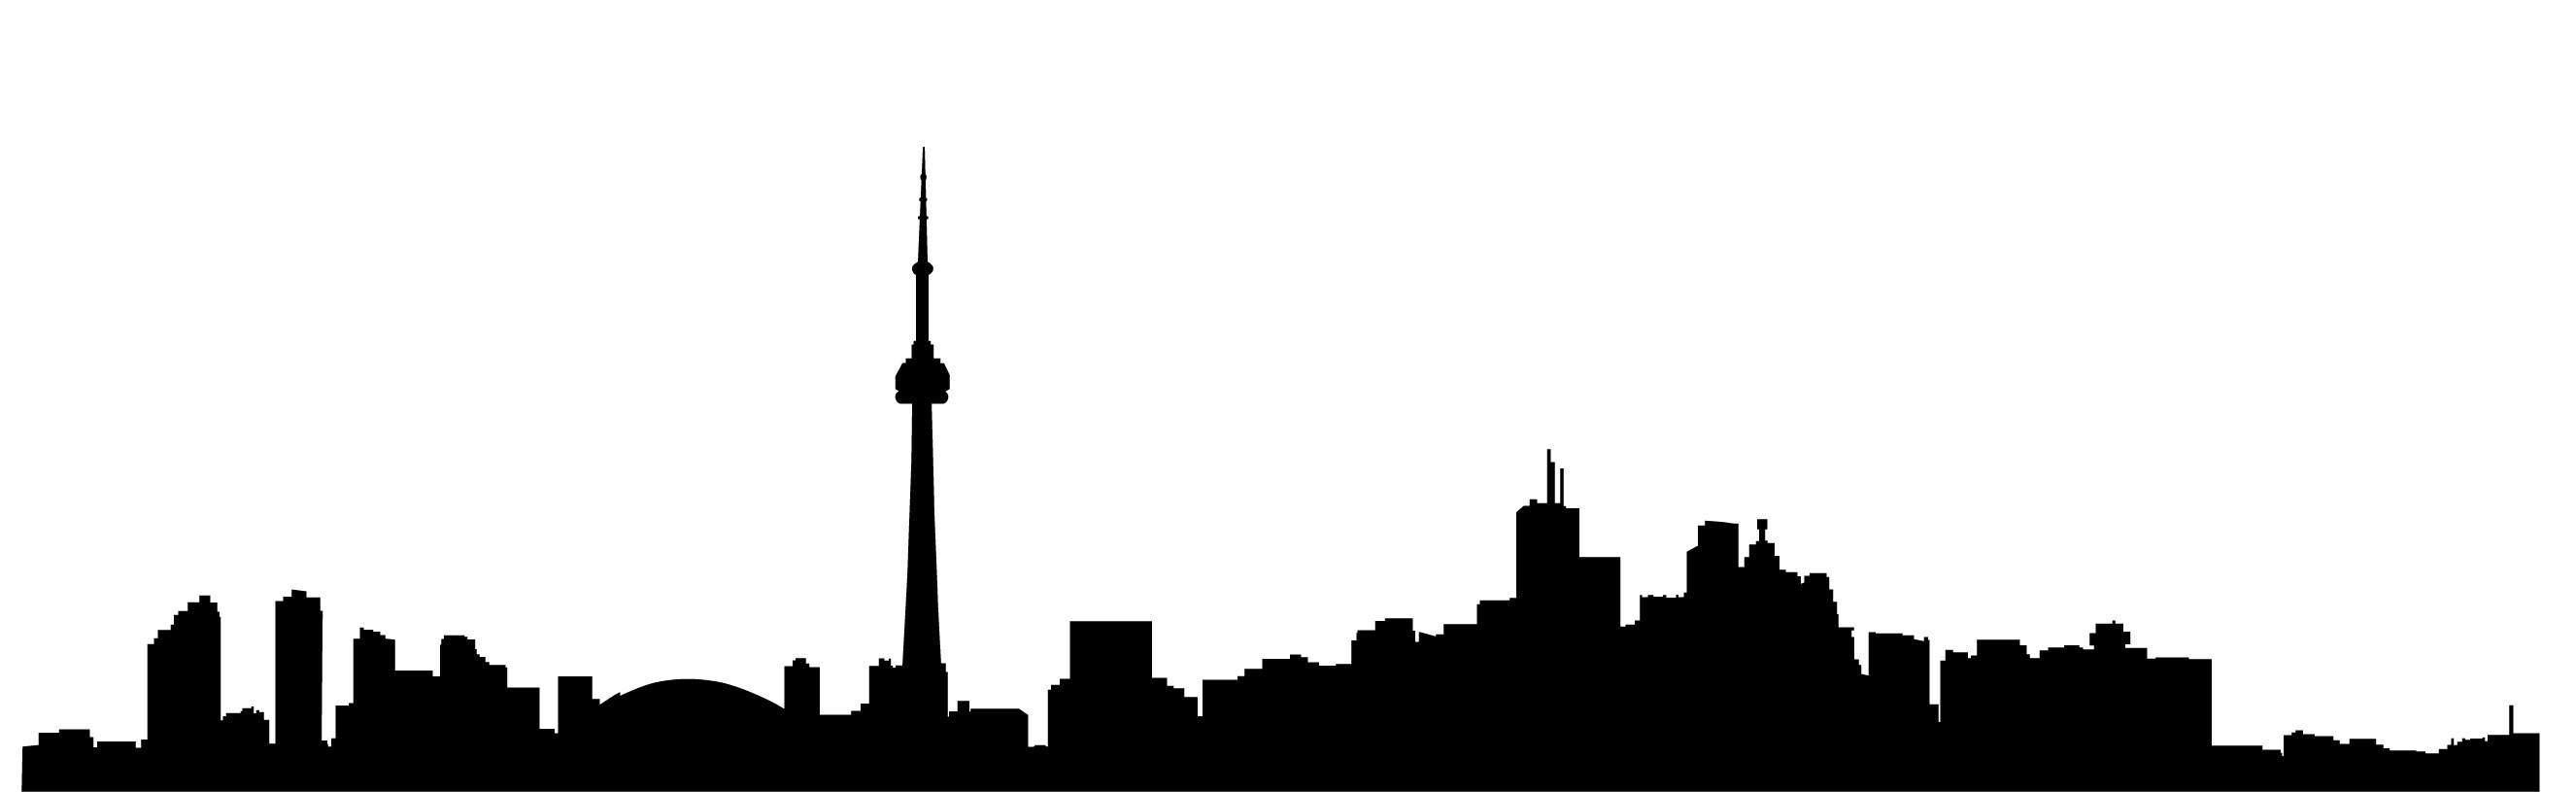 2652x815 60643708 Vector Black Silhouette Of Chicago Skyline Downtown With